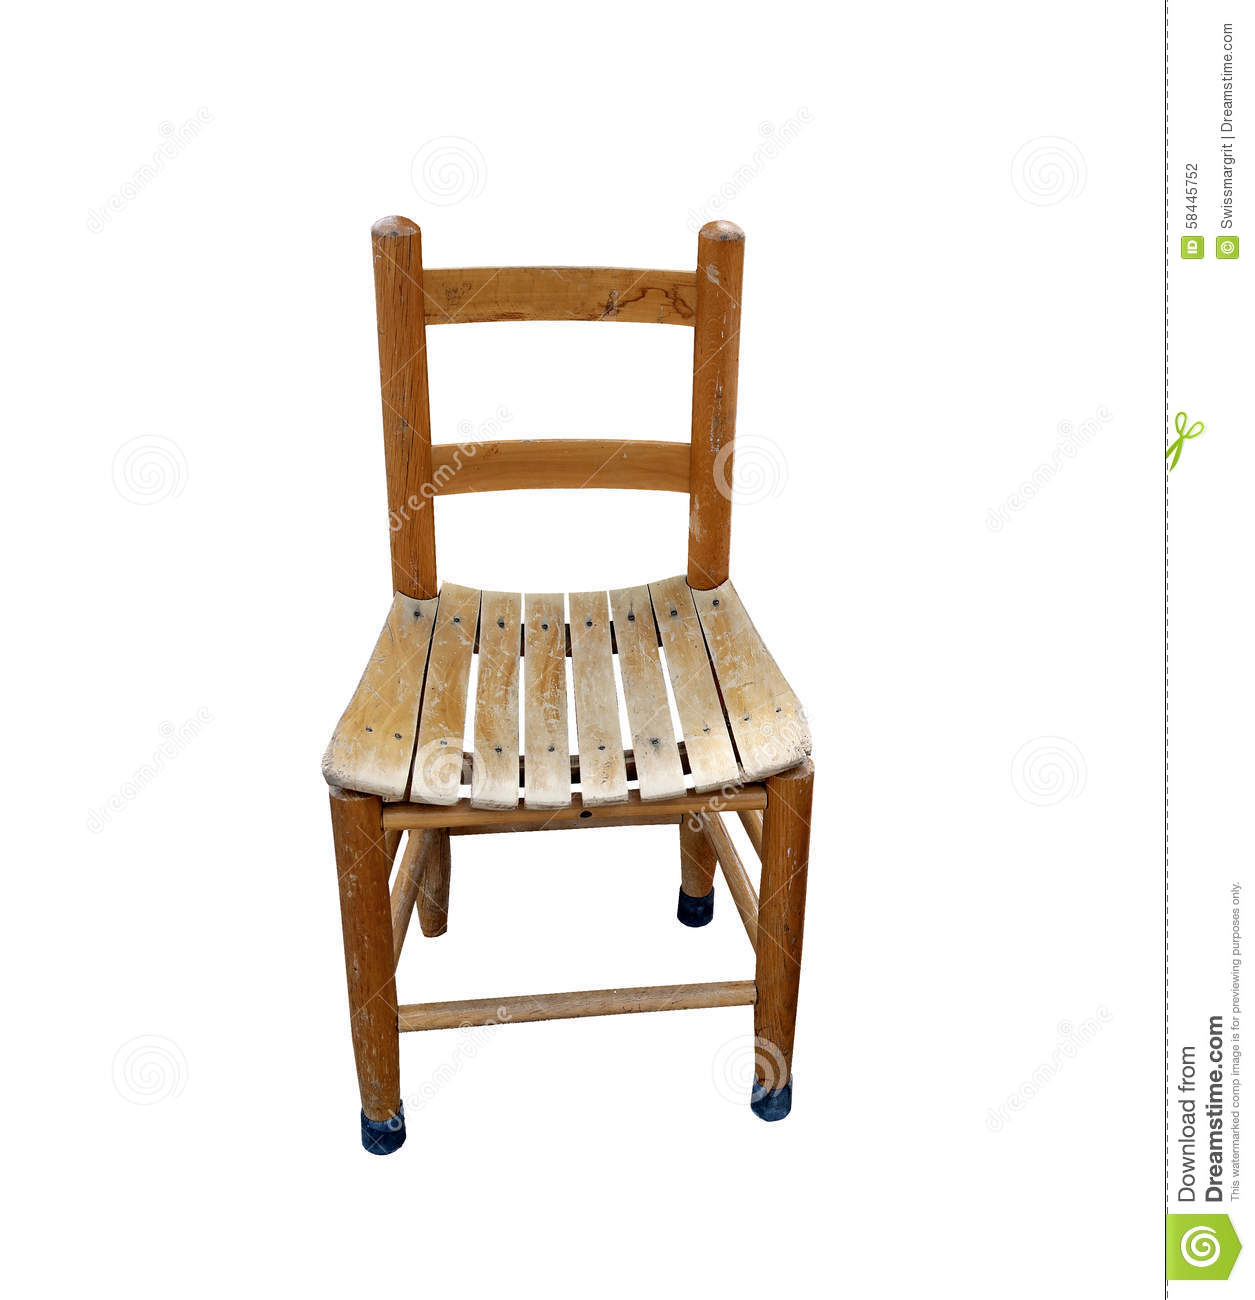 small wooden chair antique windsor chairs old for child stock photo image 58445752